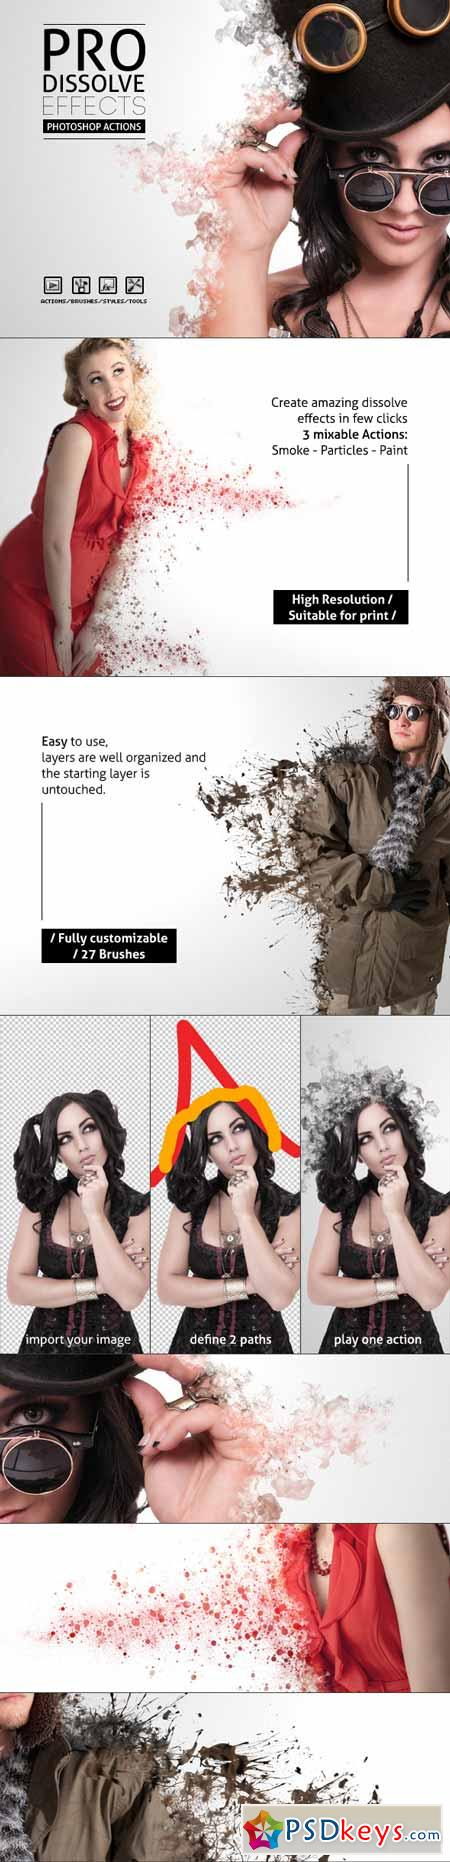 Pro Dissolve Effects - Photoshop Actions 7365409